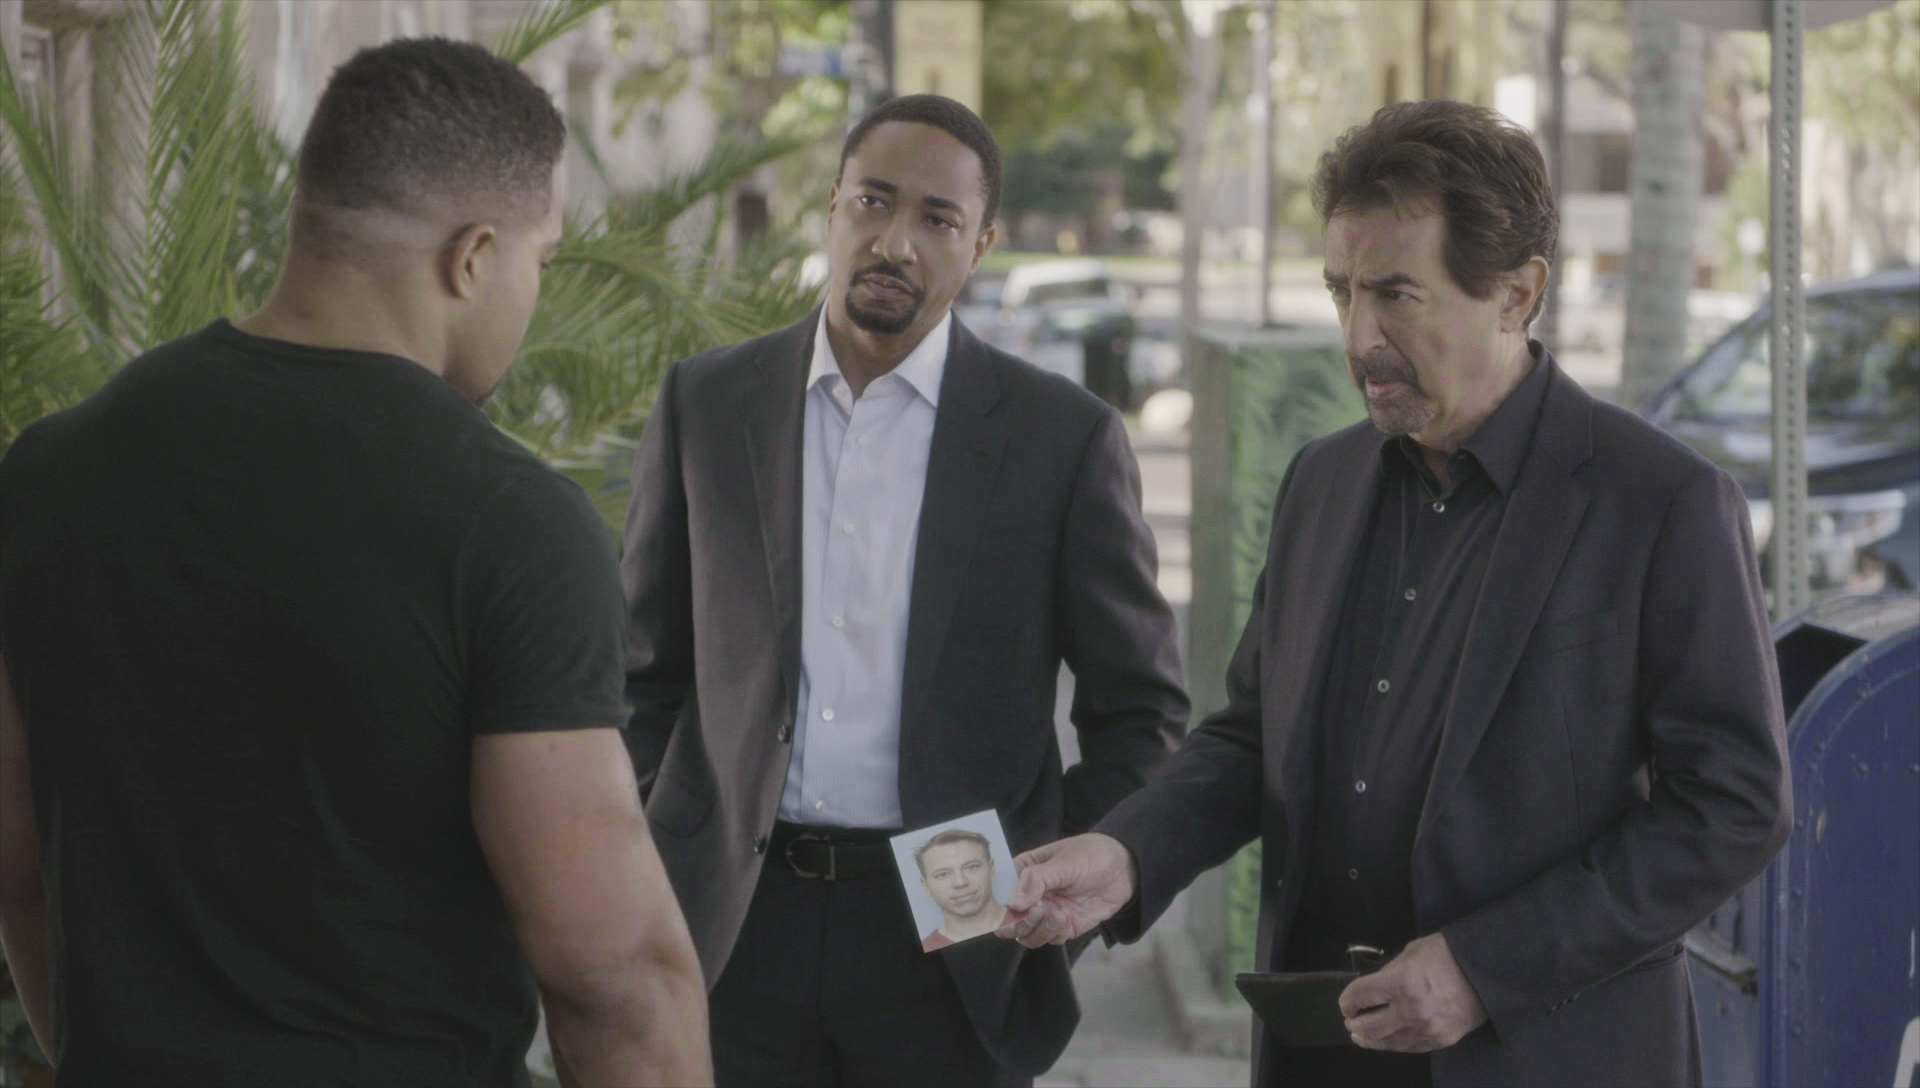 Agent Walker and David Rossi speak to a witness.